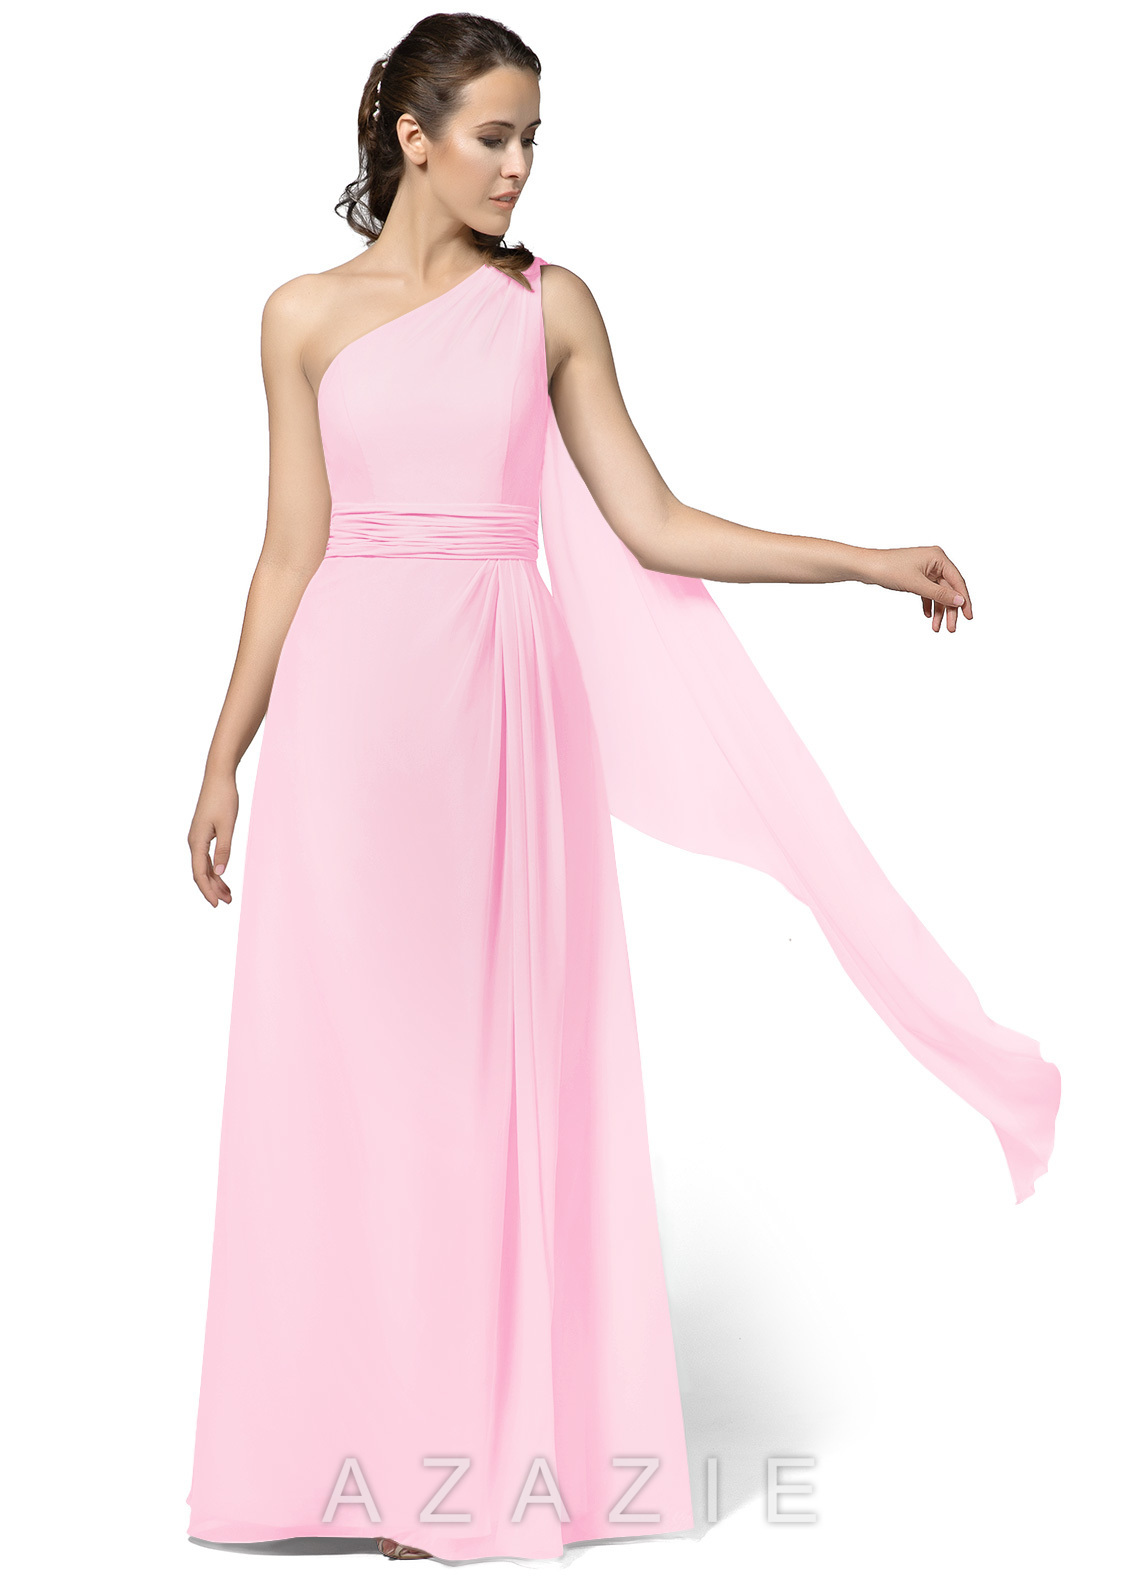 Azazie Cleo Bridesmaid Dress | Azazie